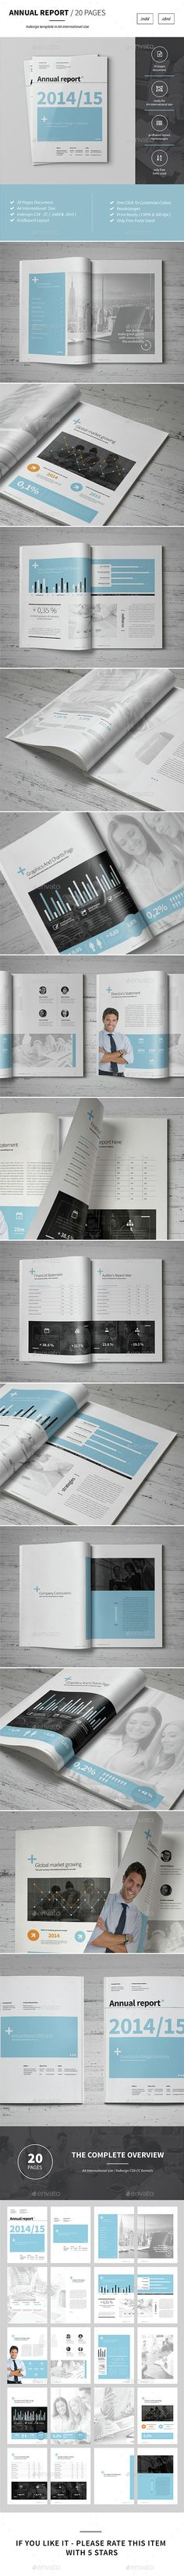 Annual Report Template InDesign INDD #design Download: http://graphicriver.net/item/annual-report/14541195?ref=ksioks